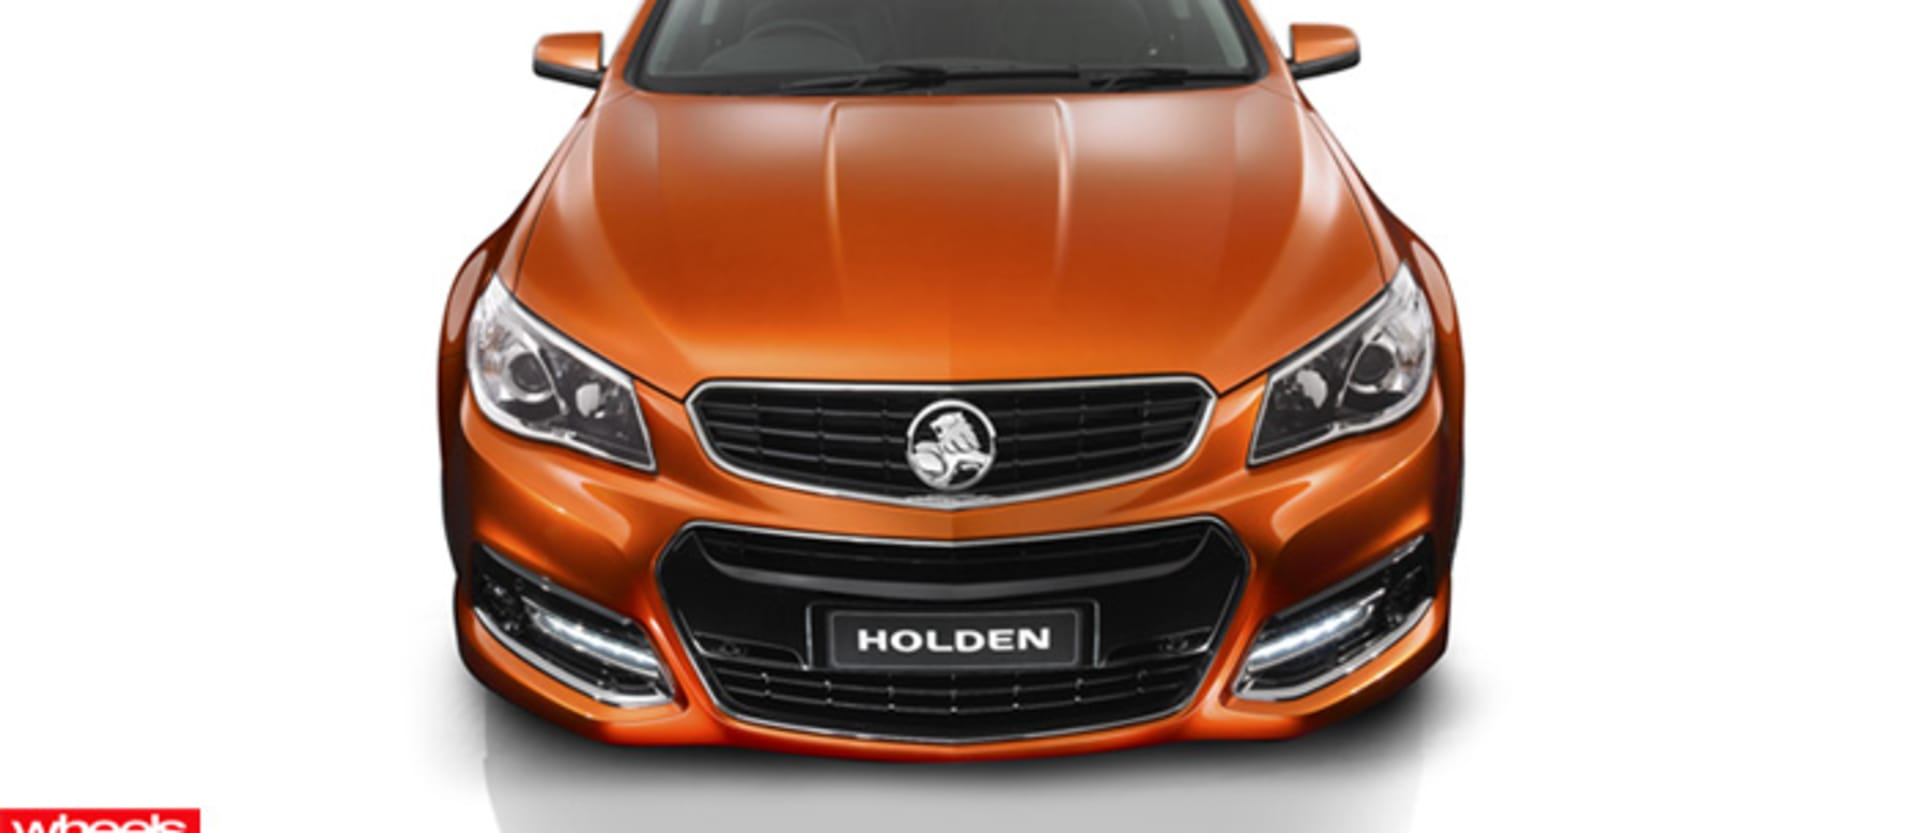 Holden VF Commodore, 2013, new, pictures, video, unveiled, released, review, test drive, driven, interior, badge, engine, wheels, speed, price